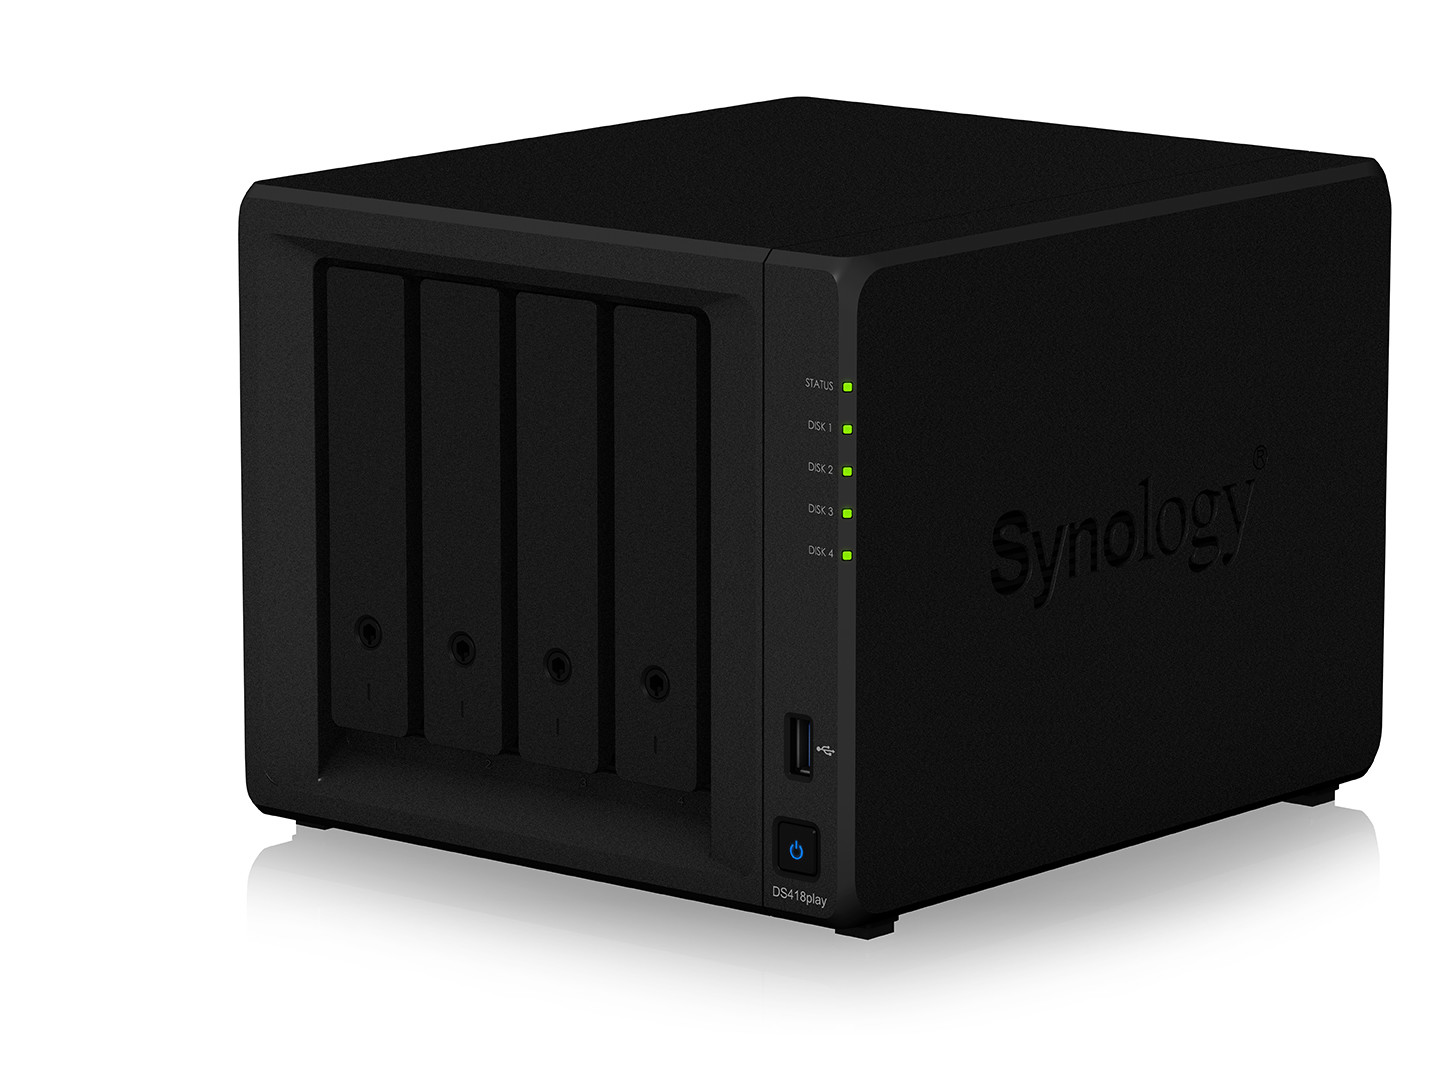 Nuevo Synology DiskStation DS418play